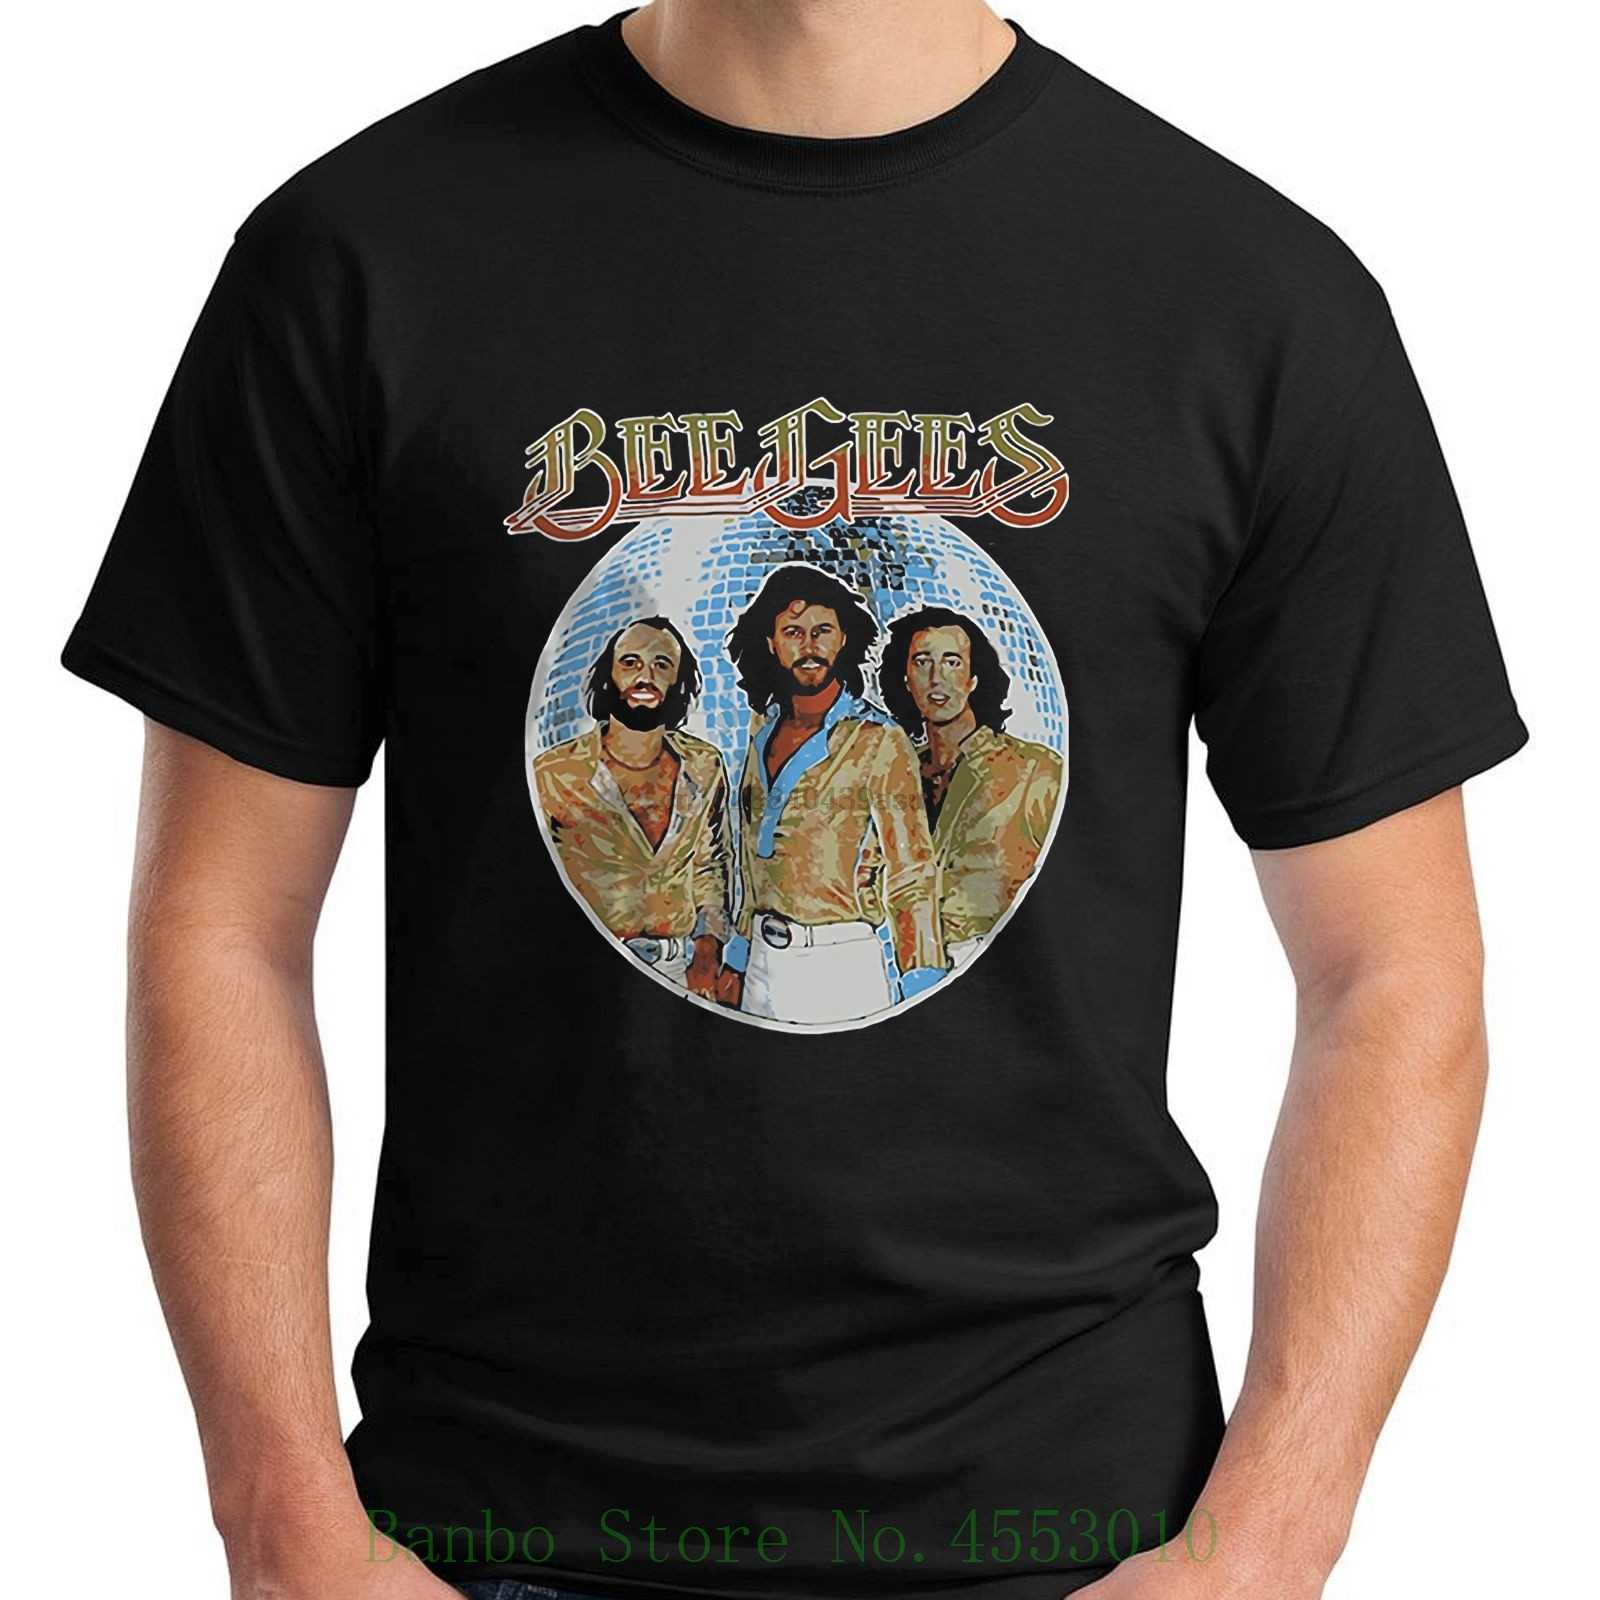 New Bee Gees Disco Ball Short Sleeve Black Men T Shirt Size S - 5xl New T Shirts Unisex Funny Tops Tee